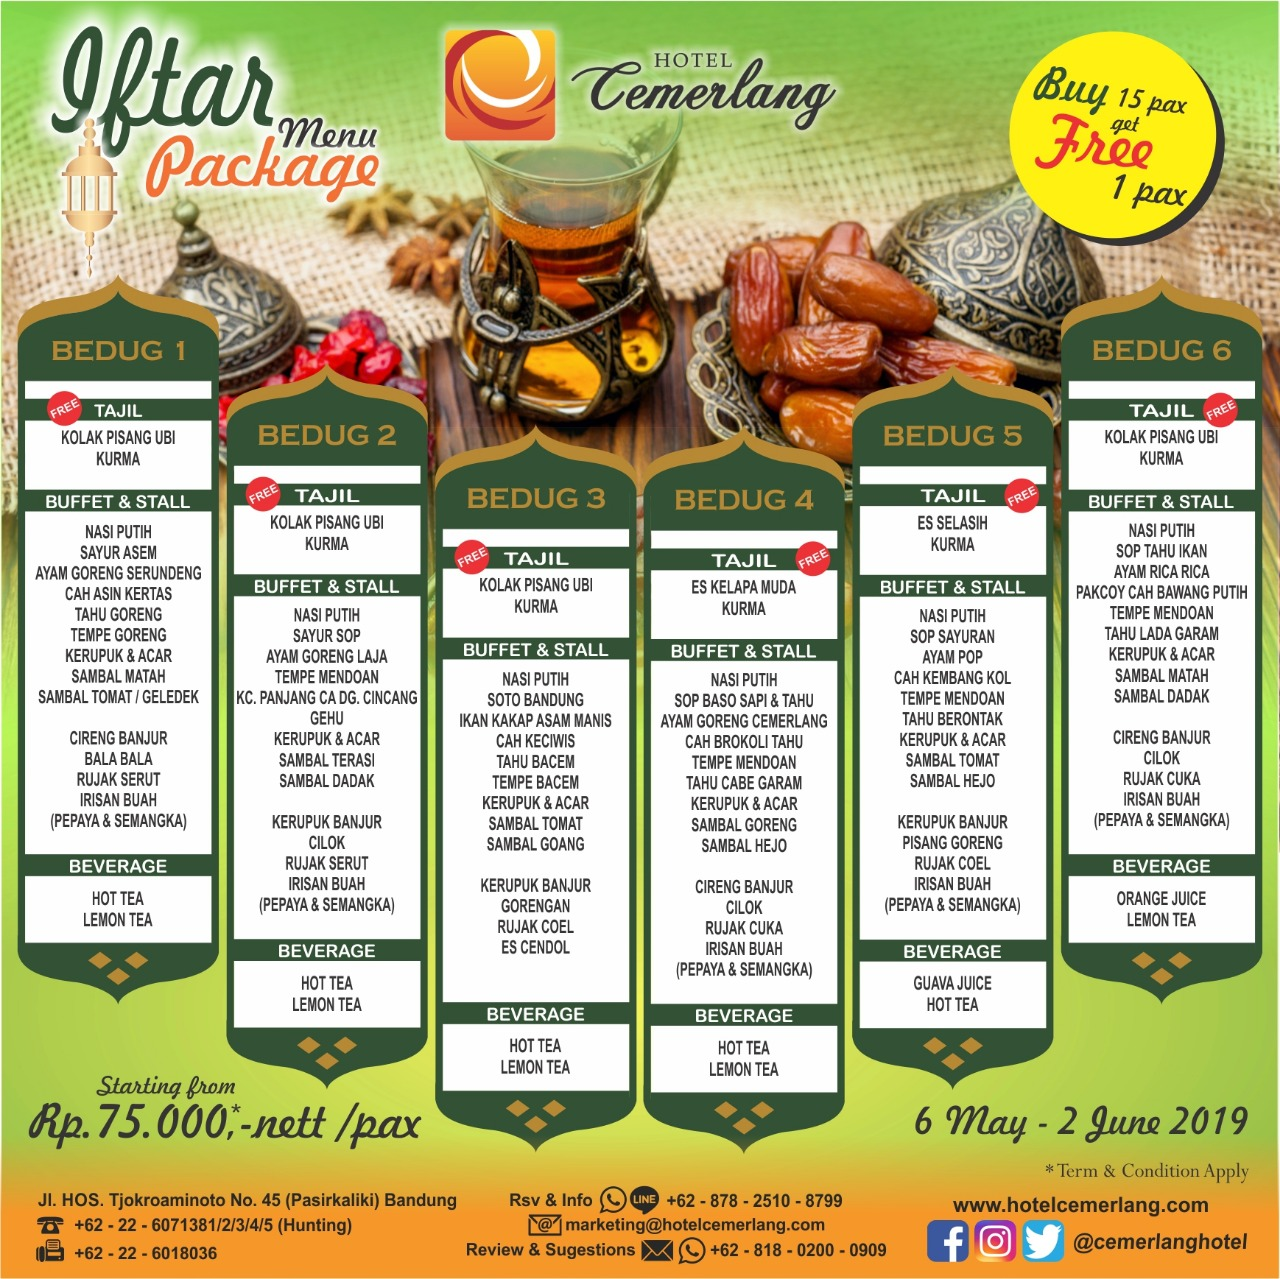 Buka Puasa/Iftar Package